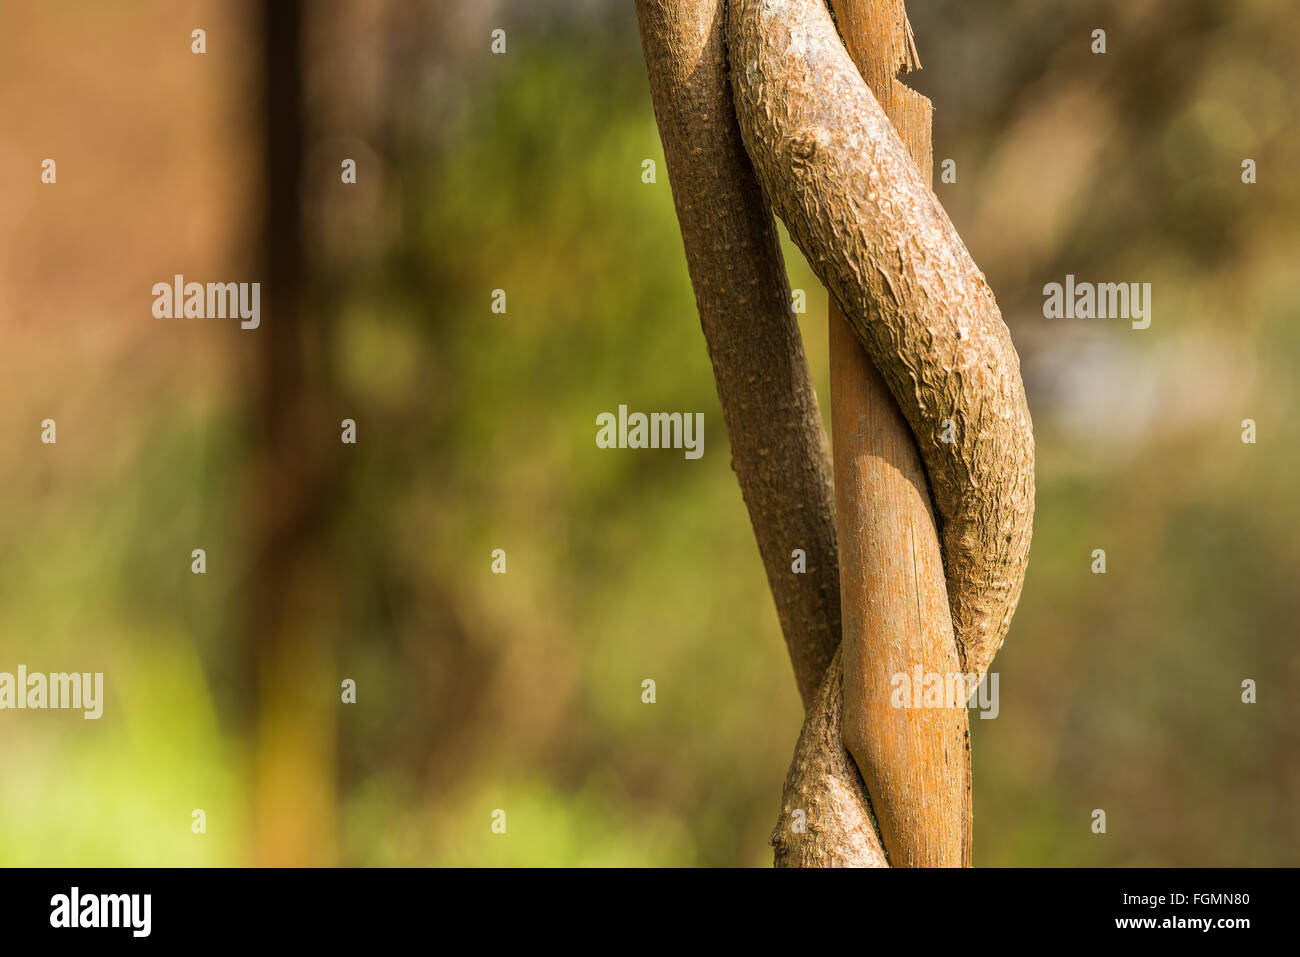 Twisted wisteria vine around bamboo can that is becoming crushed and strangled by developing new growth reduce vascular - Stock Image